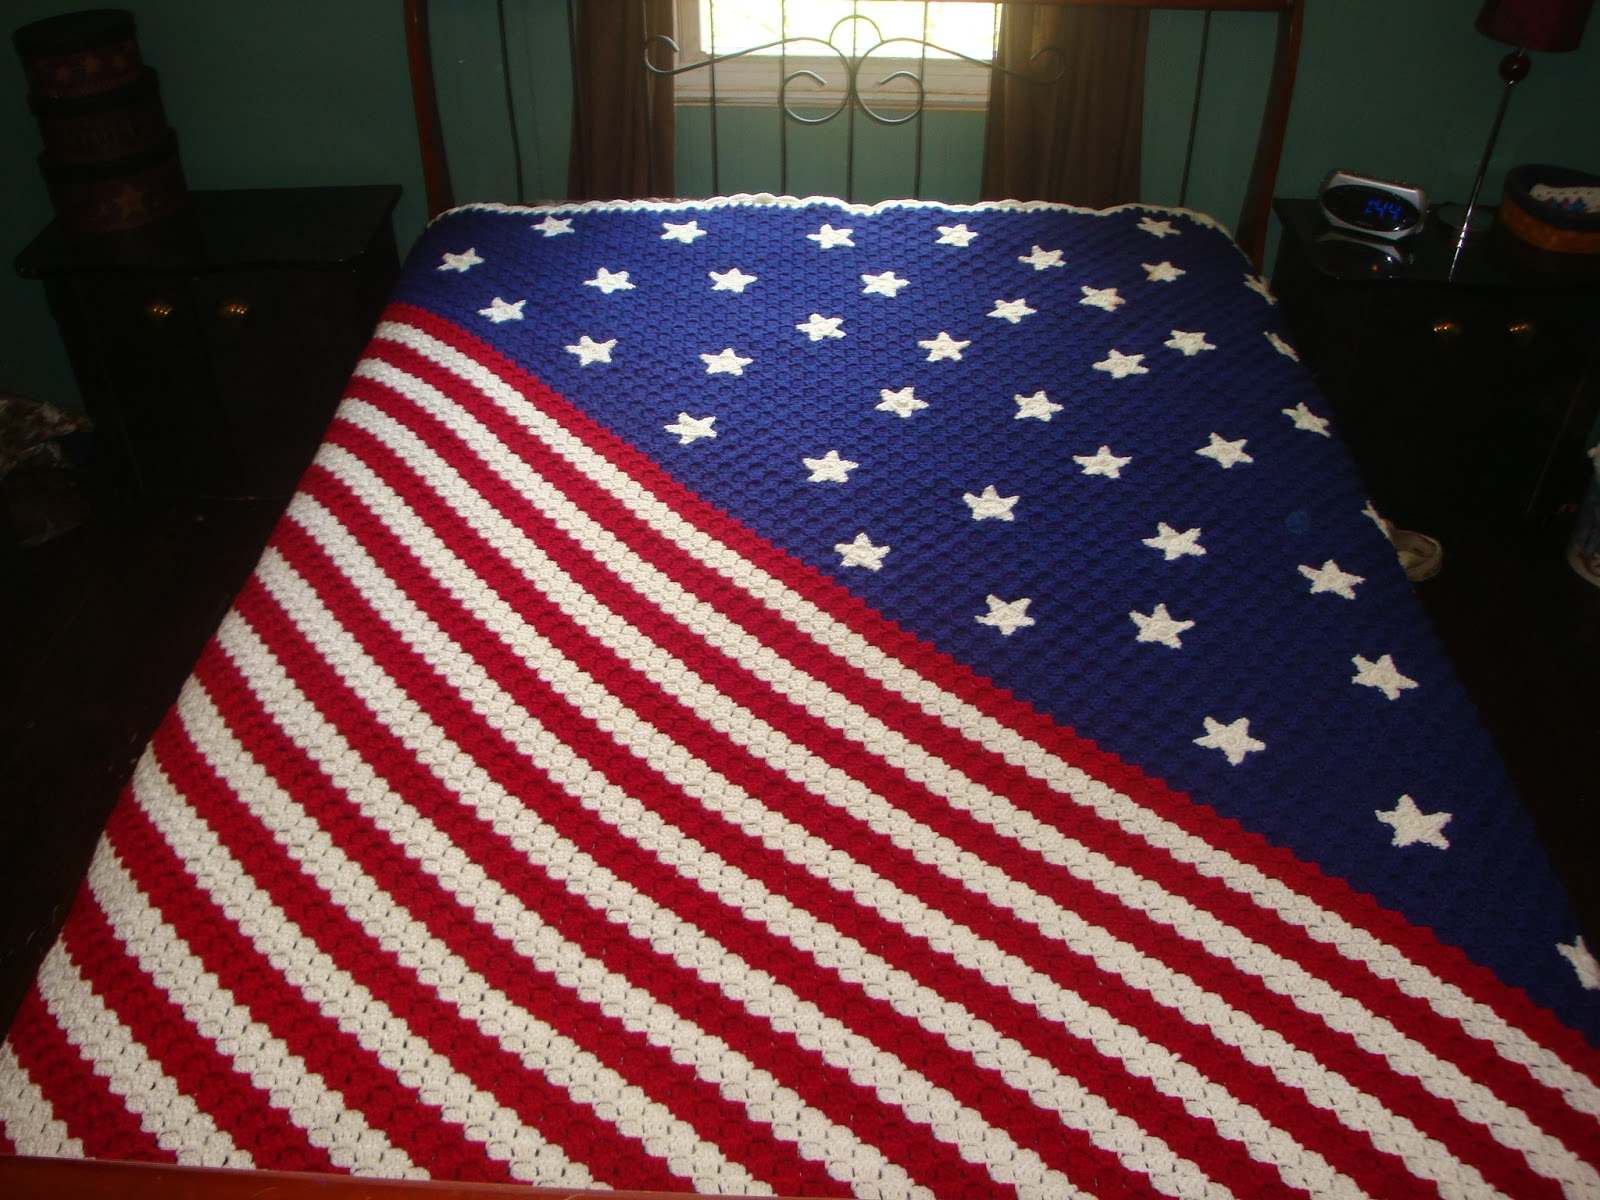 Sarah S Bits And Pieces Crochet Stars And Stripes Corner